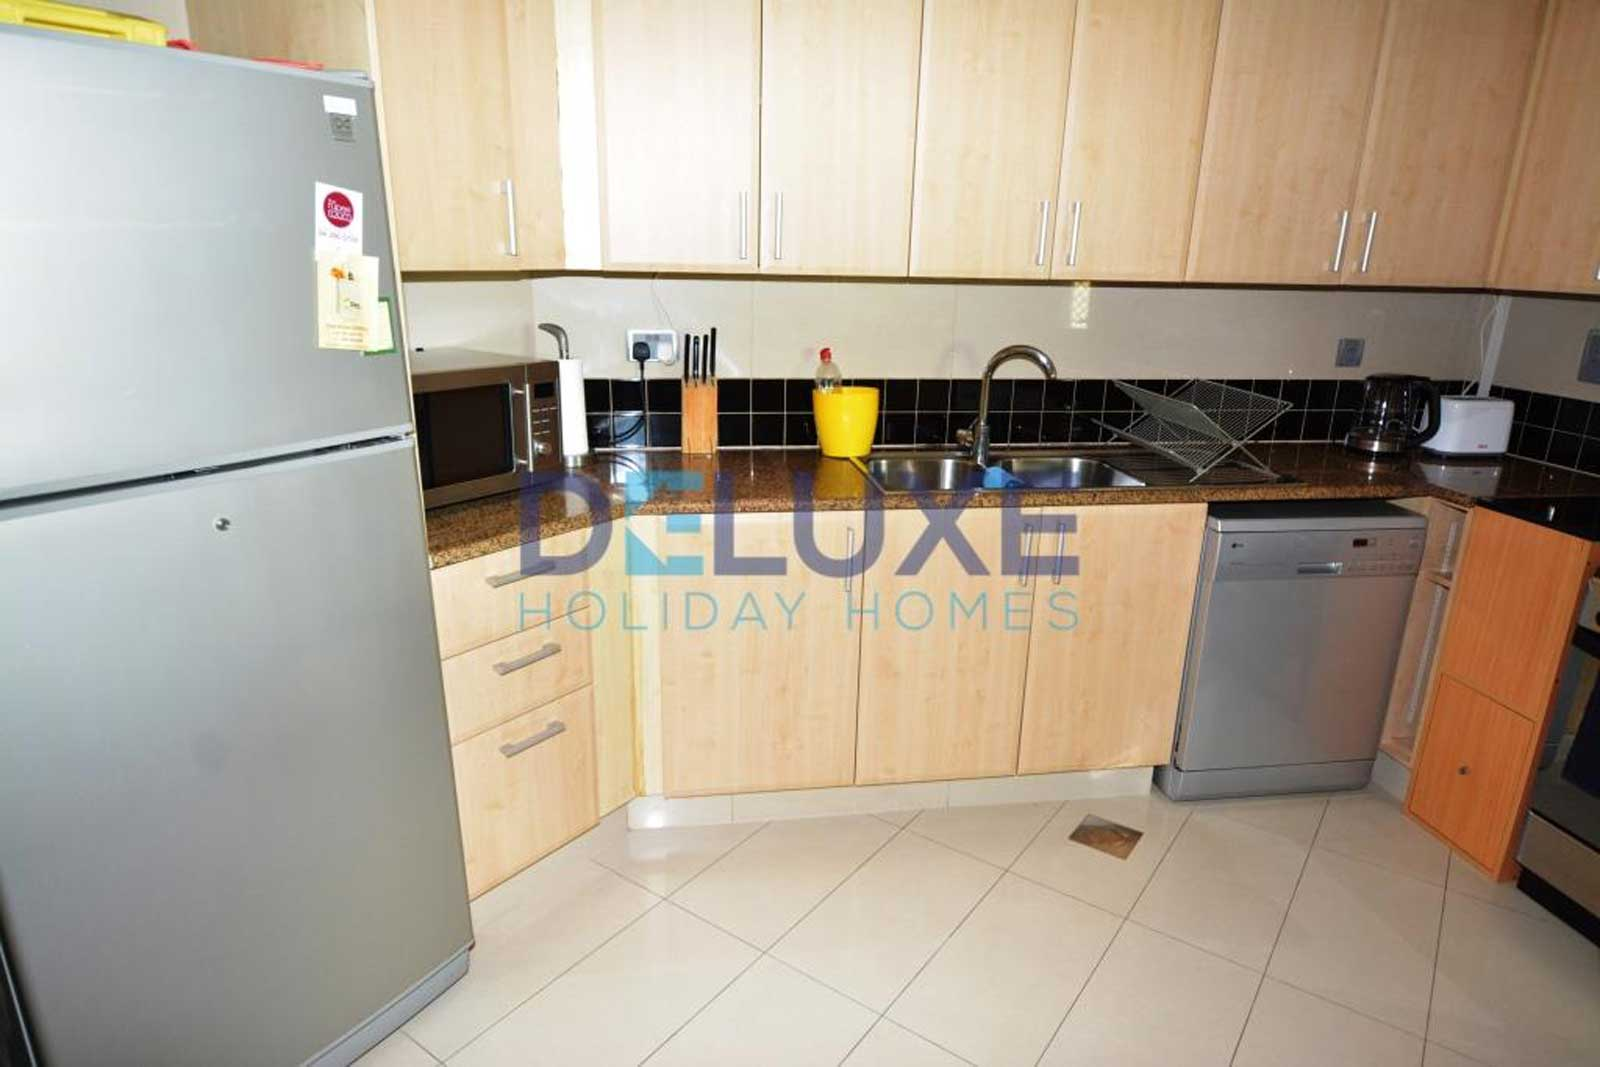 Shoreline Residences - Kitchen - Deluxe Holiday Homes